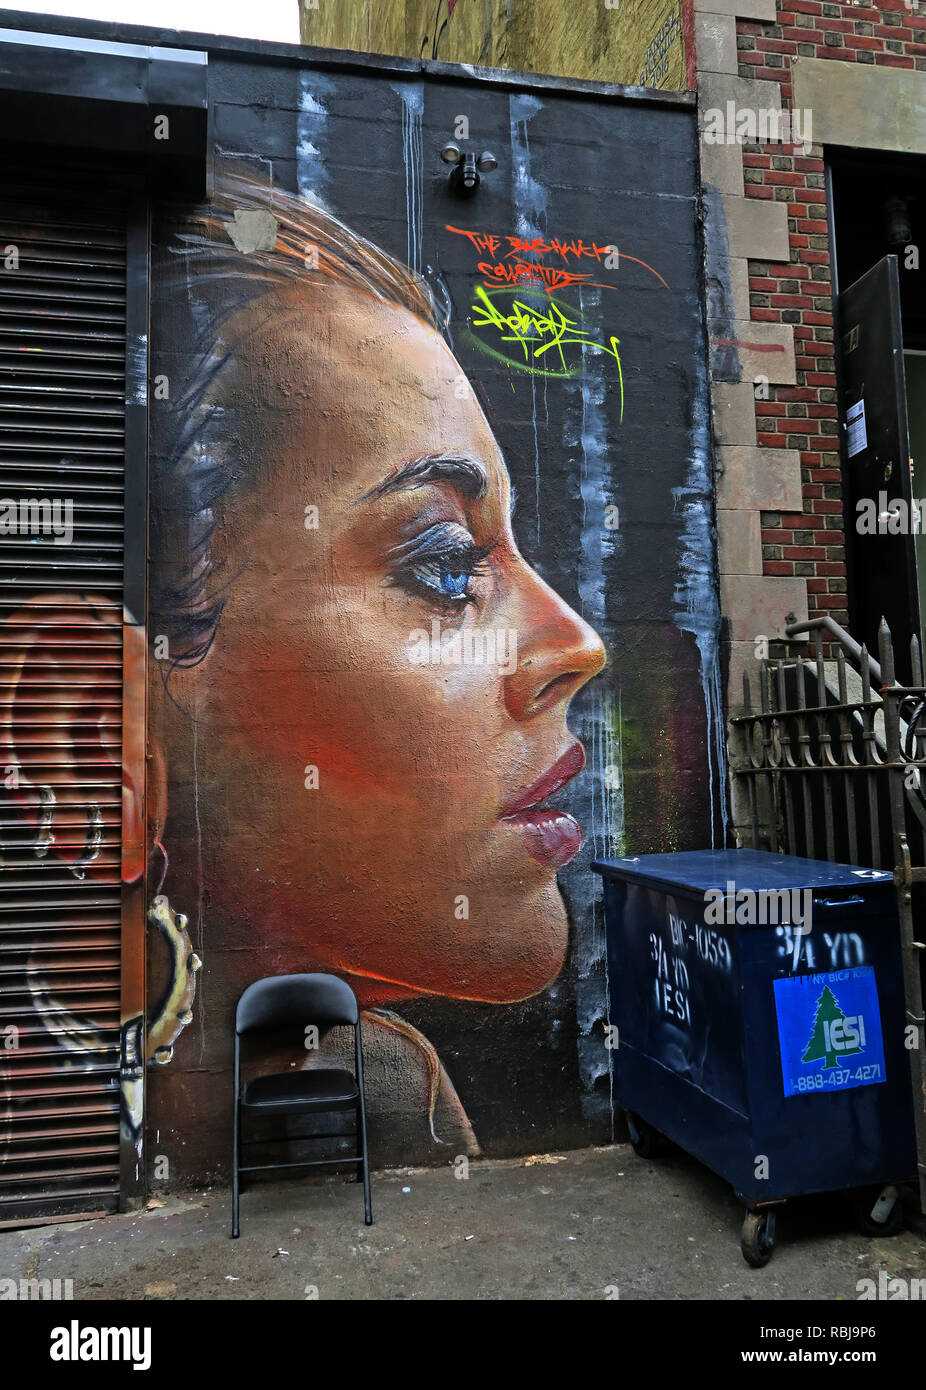 Face Art, East Village, New York City, NYC, NY, USA - Stock Image